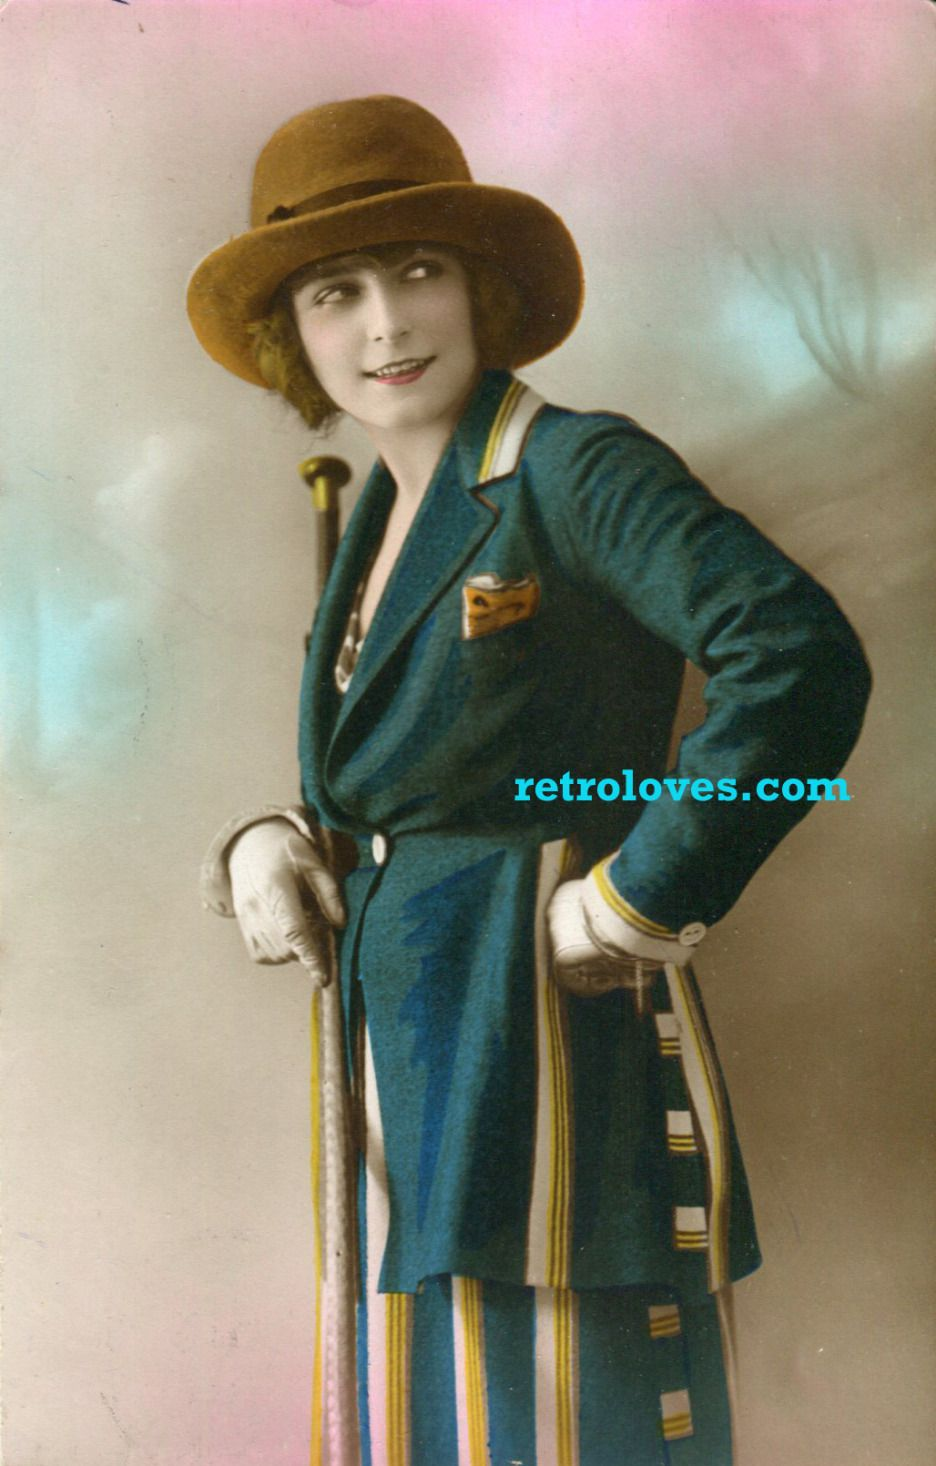 1920's lady in suit